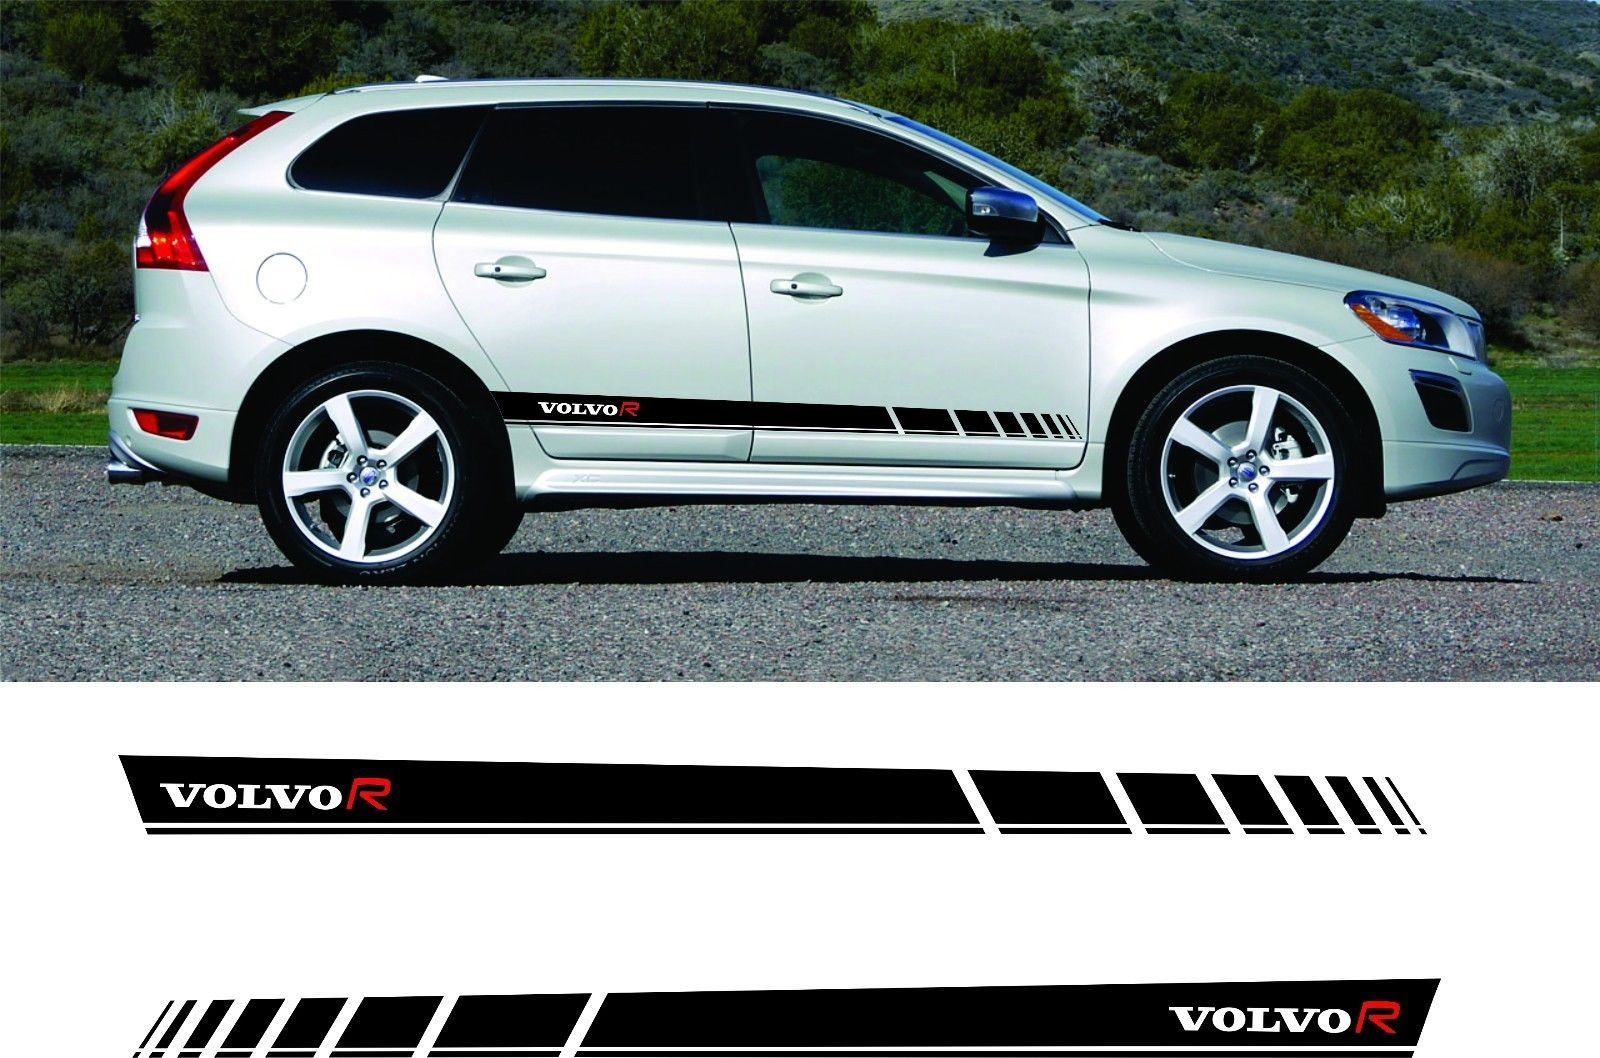 For 1set 2pcs volvo xc60 r design side stripes graphics decals stickers any colour car styling